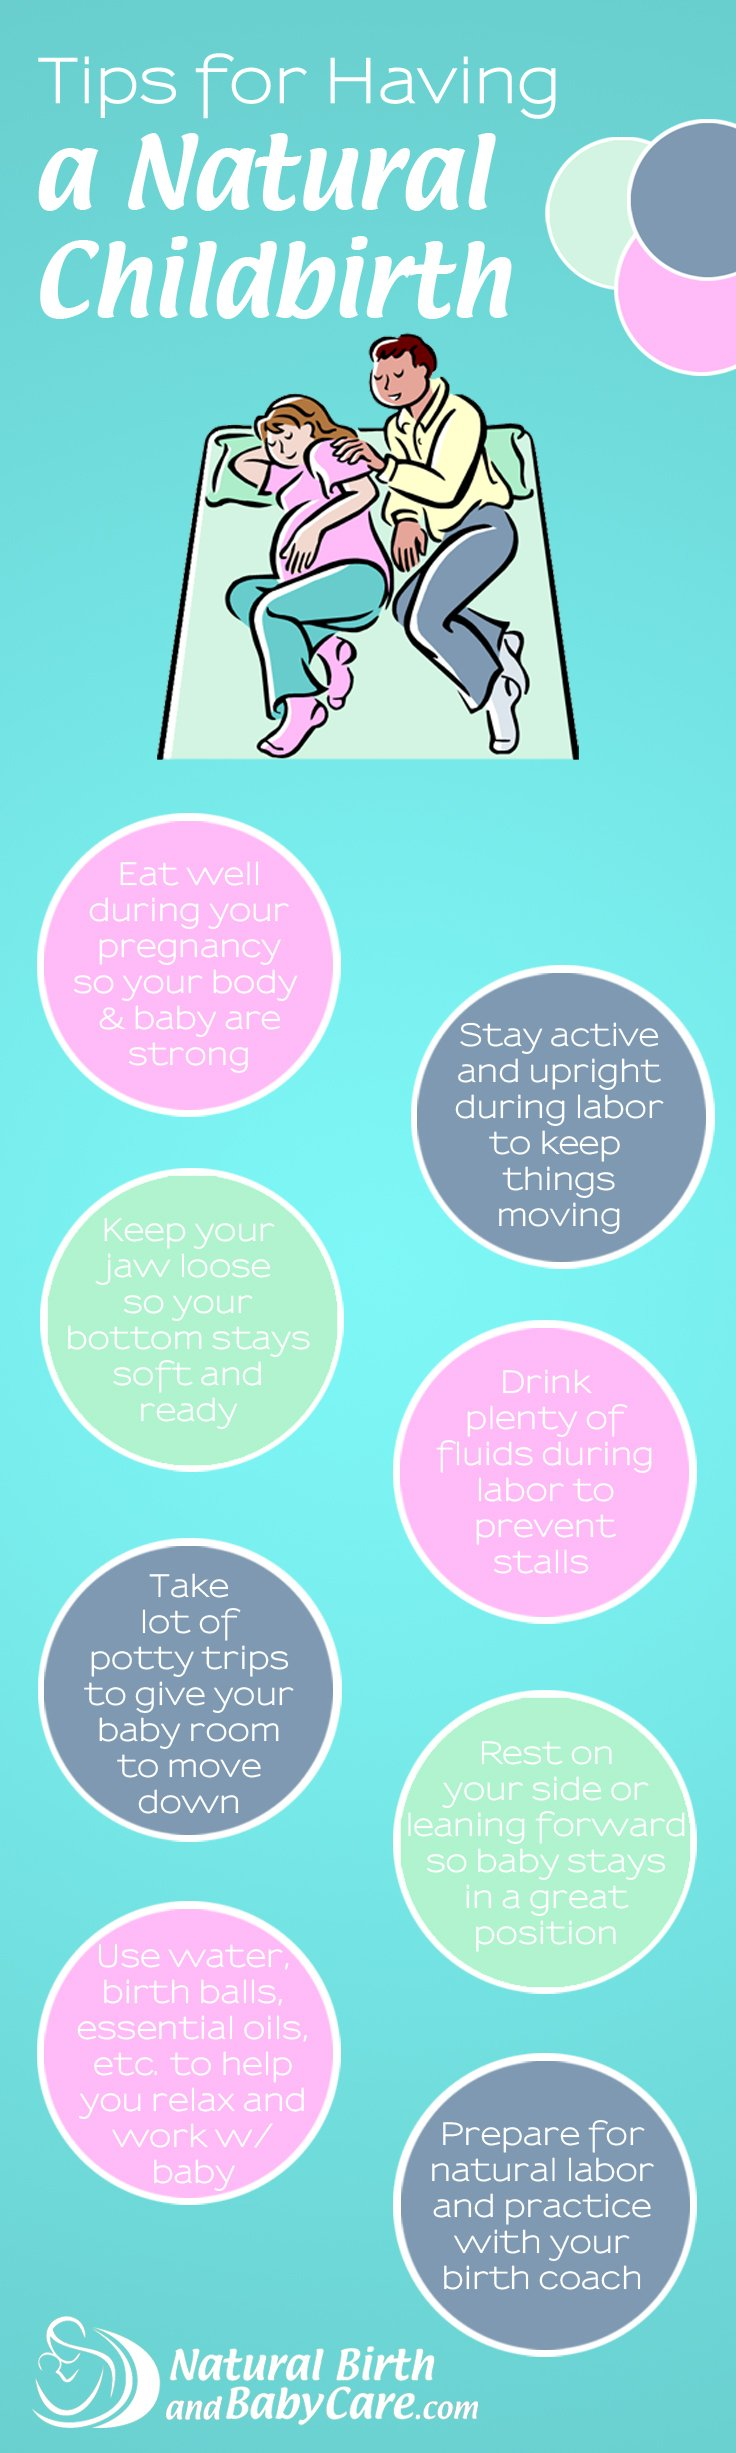 Tips for a Natural Childbirth